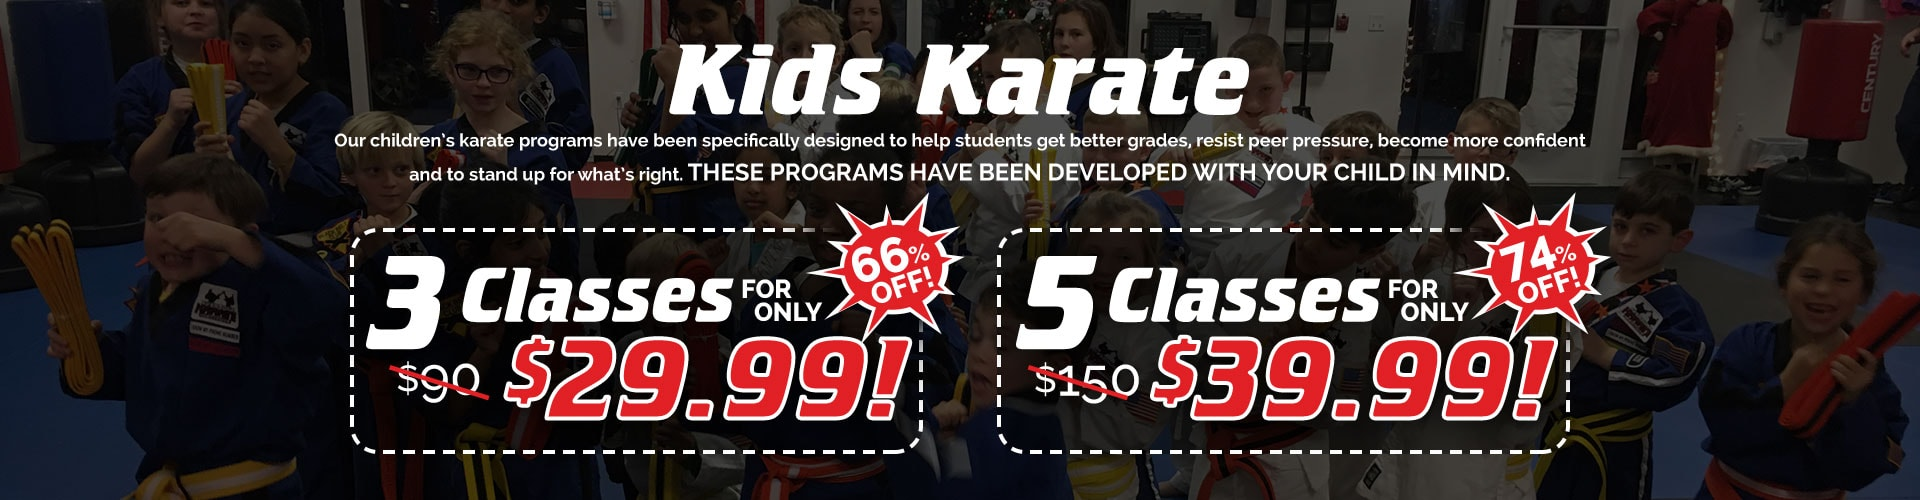 Kids Karate @ Everson's Karate